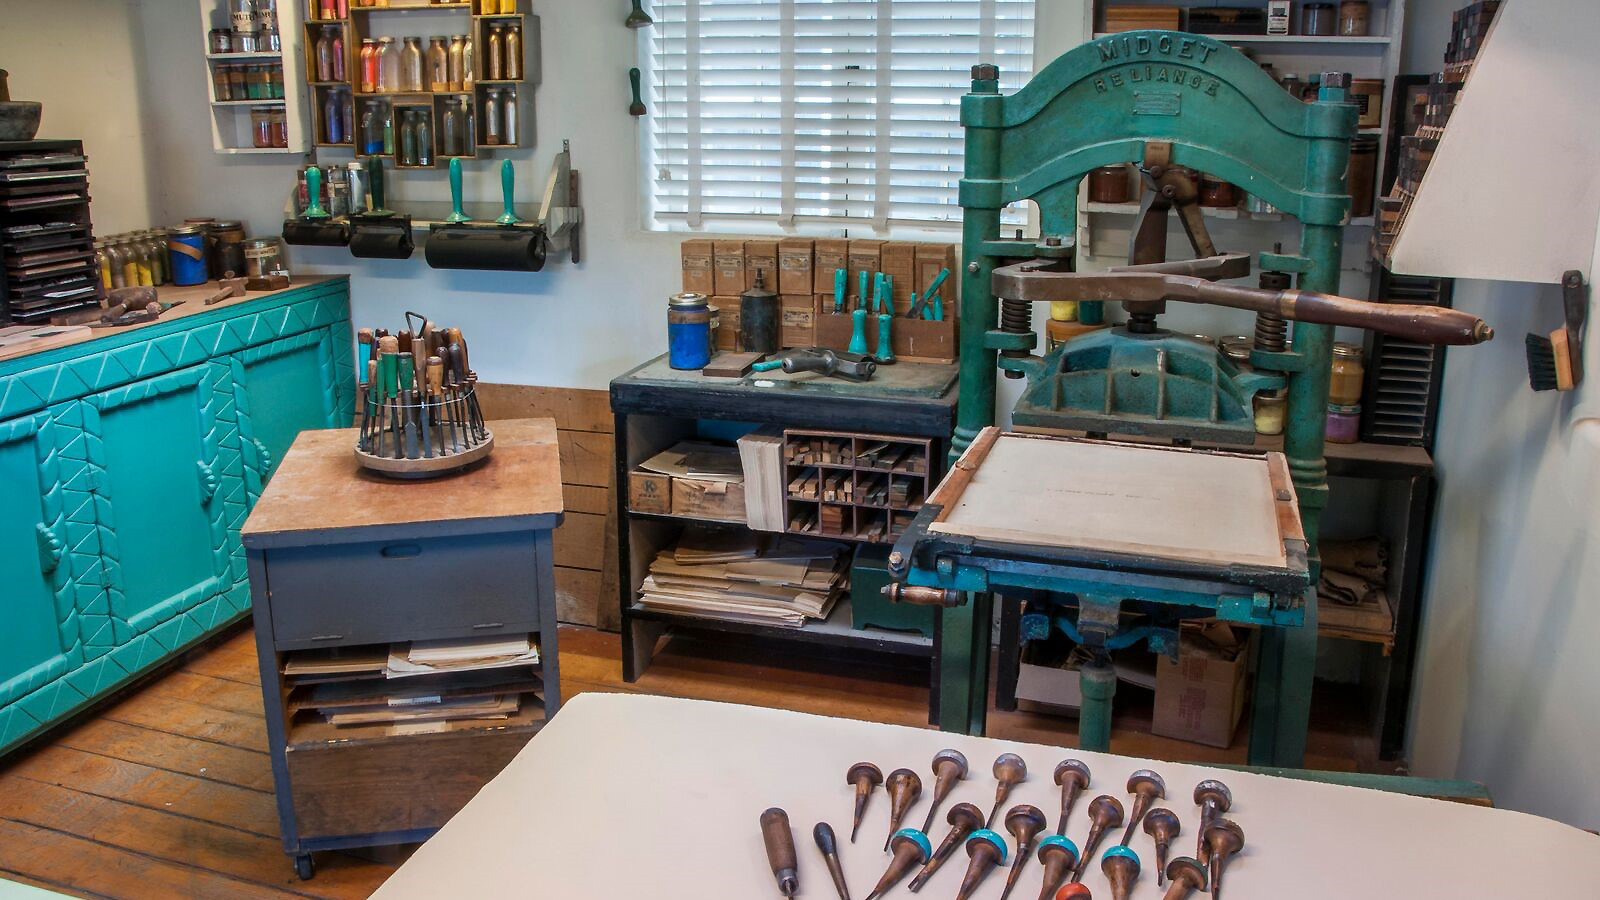 Gustave Baumann's Midget Reliance press, carving tools and pigments. Photo by Blair Clark